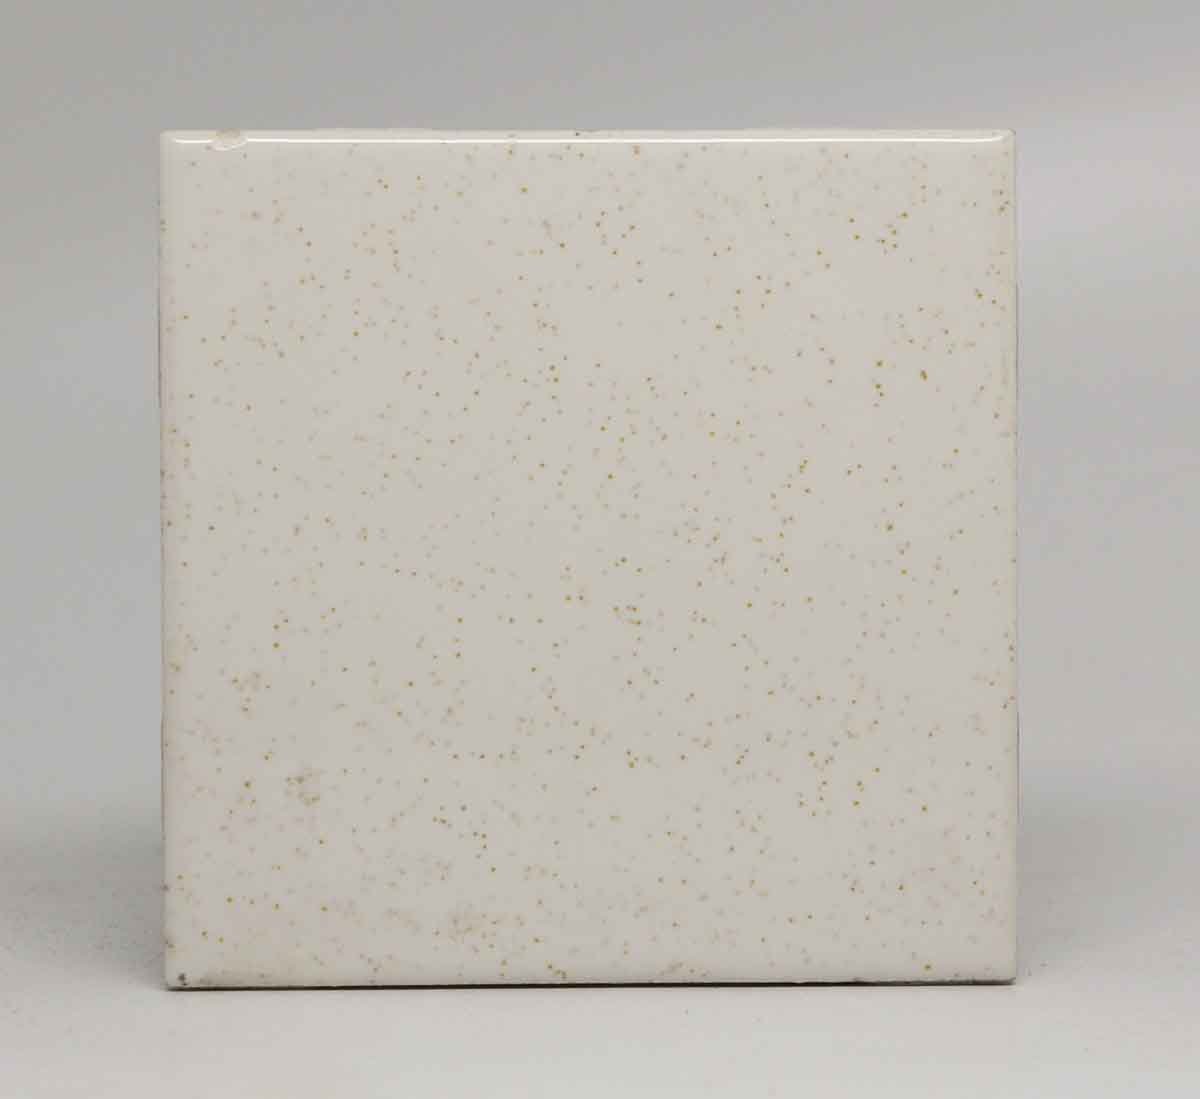 Pair Of White Speckled Square Tiles Olde Good Things